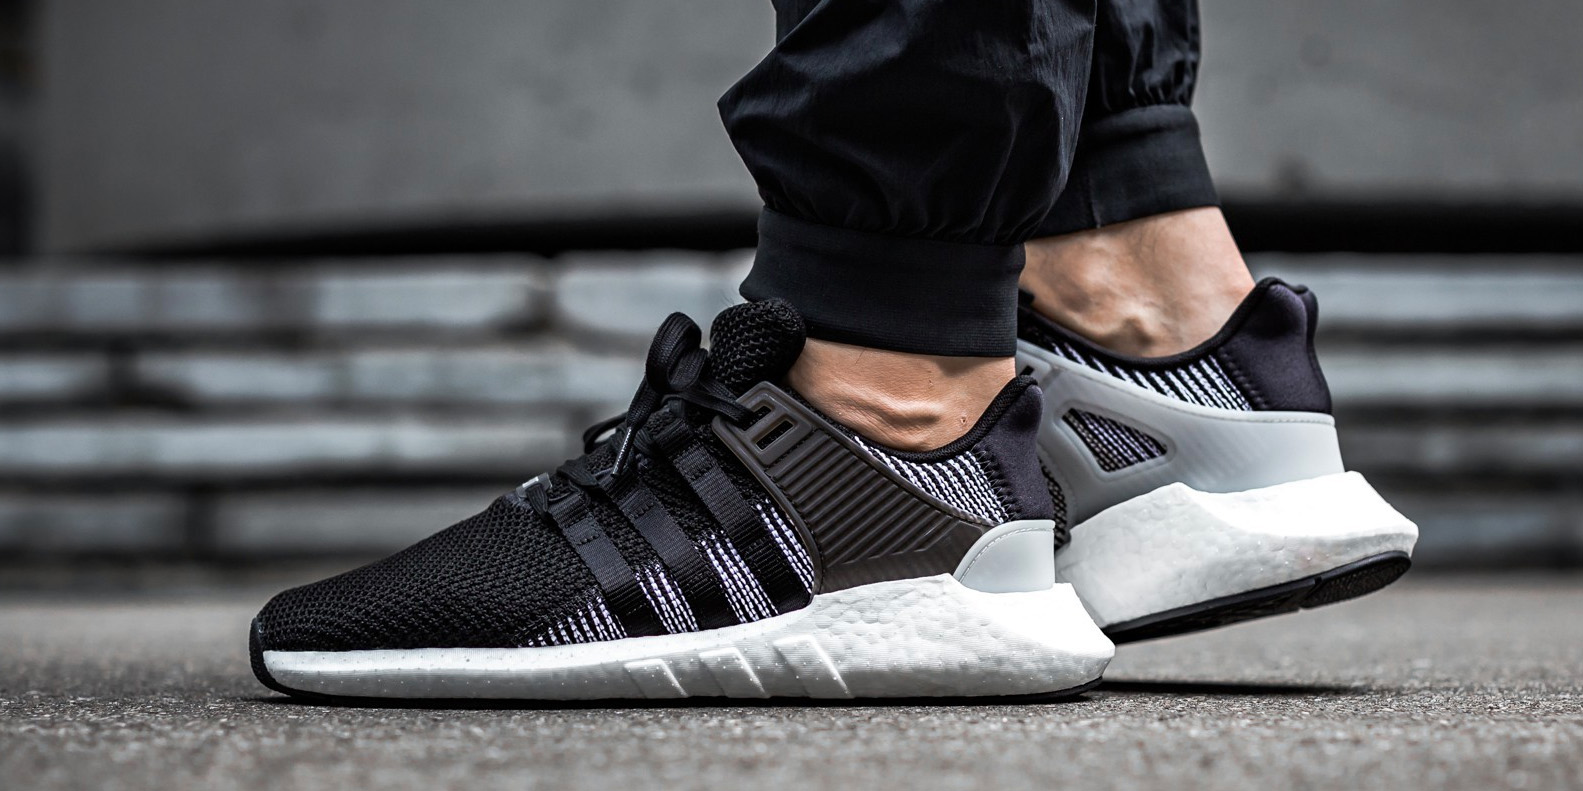 new products a7fe8 aa1c2 adidas cuts an extra 40% off select EQT shoes and apparel ...